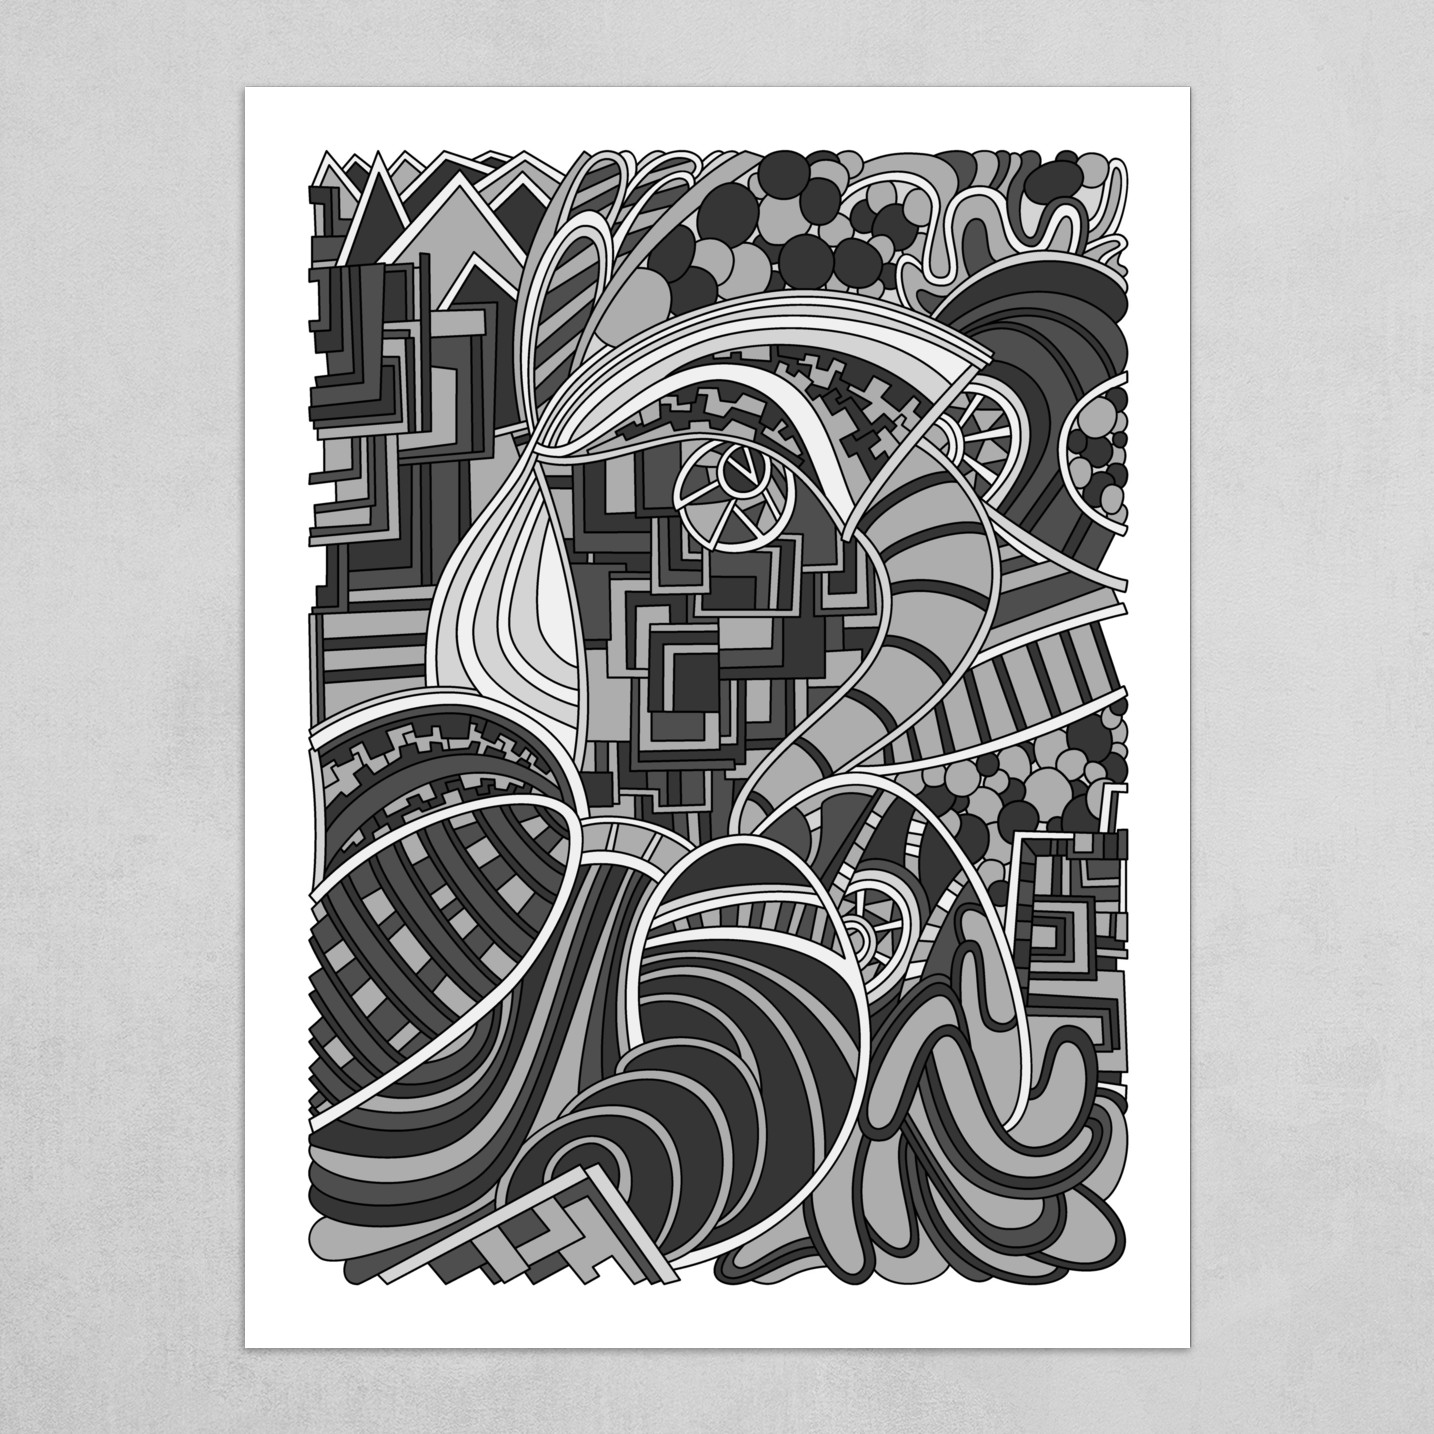 Wandering Abstract Line Art 48: Grayscale